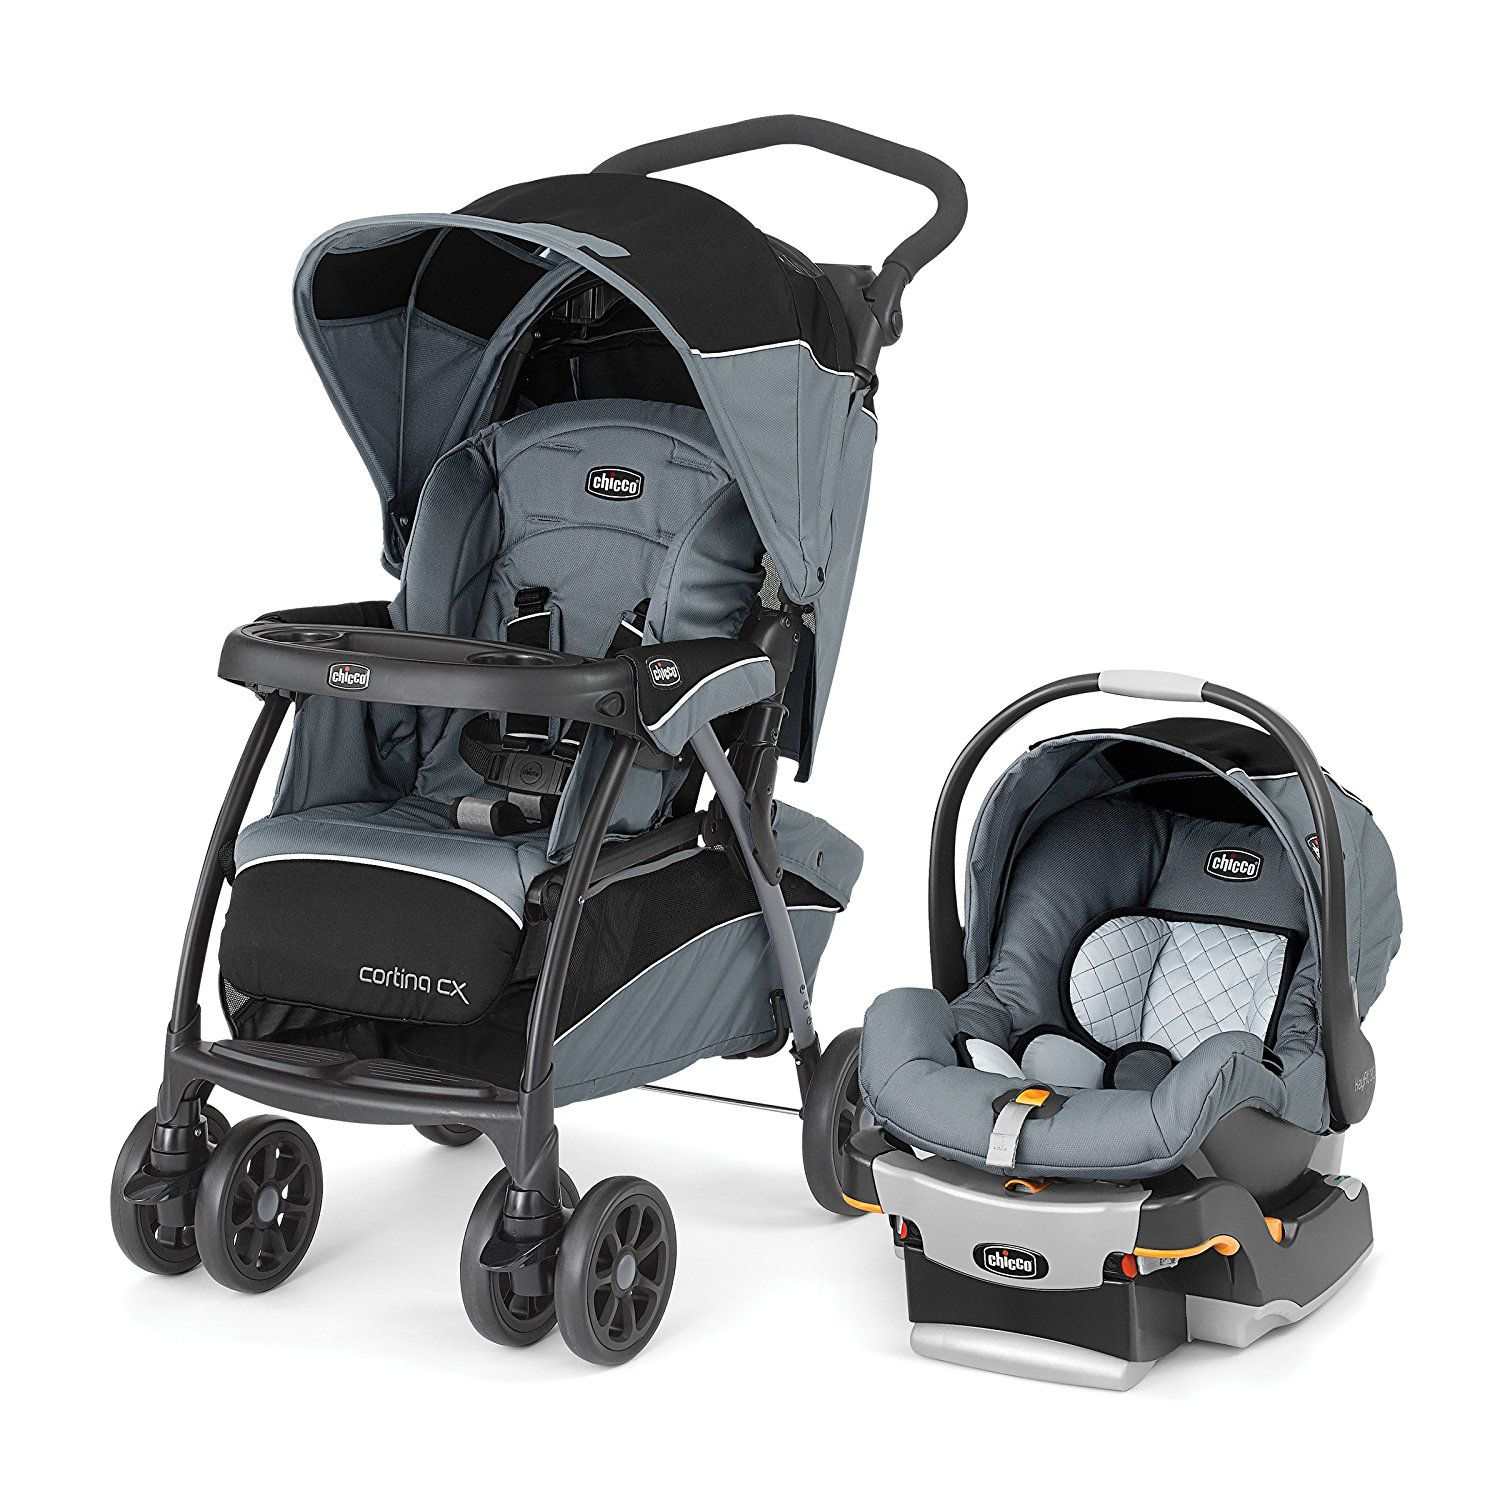 Should You Try The Chicco Cortina Travel System